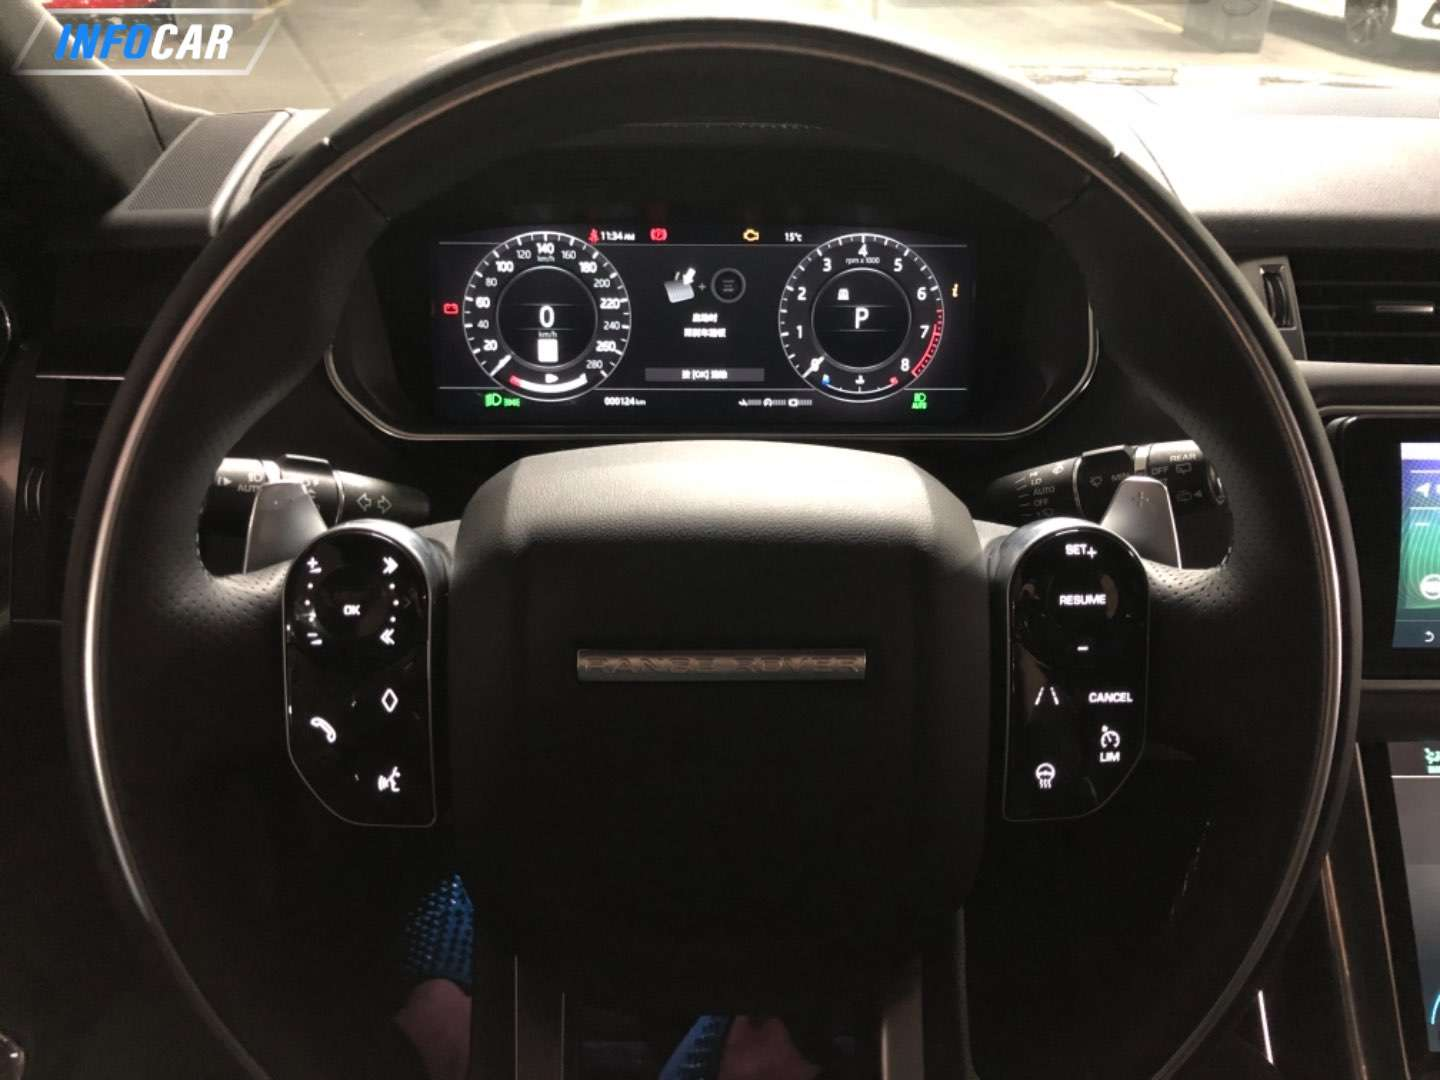 2019 Land Rover Range Rover Sport supercharged dynamic - INFOCAR - Toronto's Most Comprehensive New and Used Auto Trading Platform